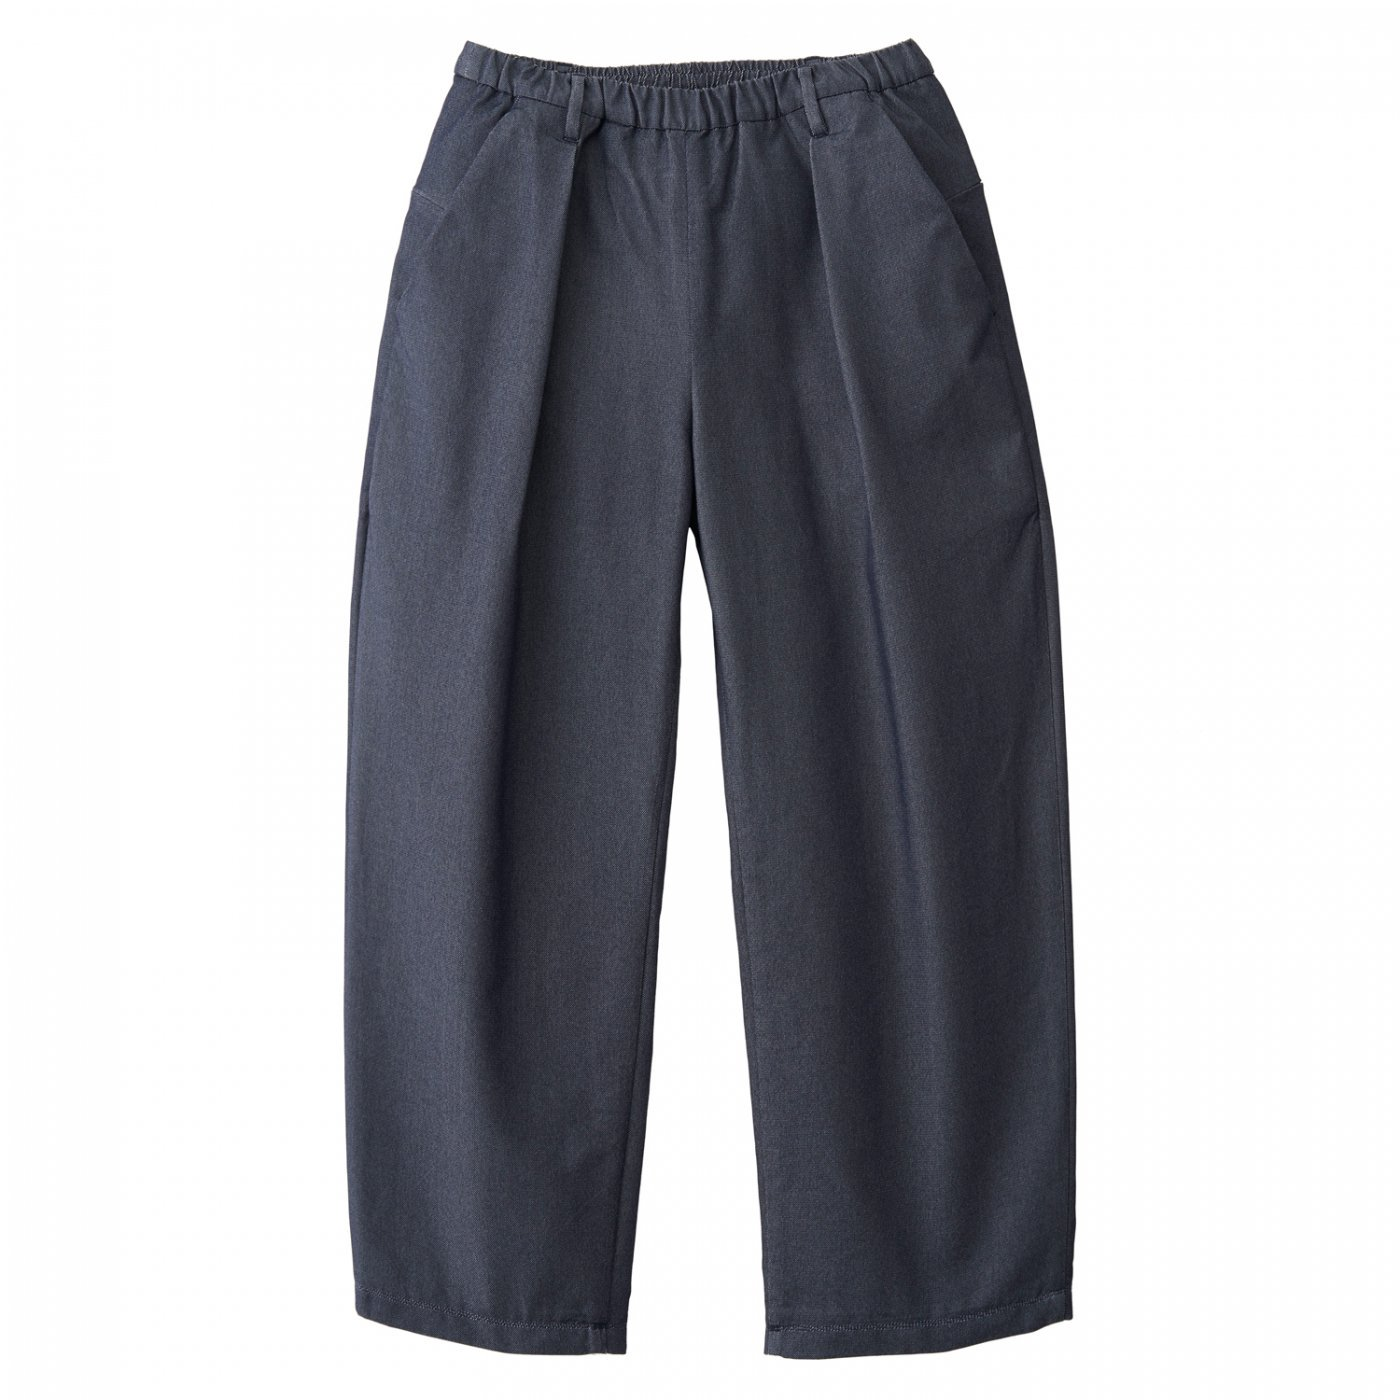 <img class='new_mark_img1' src='https://img.shop-pro.jp/img/new/icons8.gif' style='border:none;display:inline;margin:0px;padding:0px;width:auto;' />TEATORA テアトラ- WALLET PANTS RESORT / TIME LEAP -NAVY-